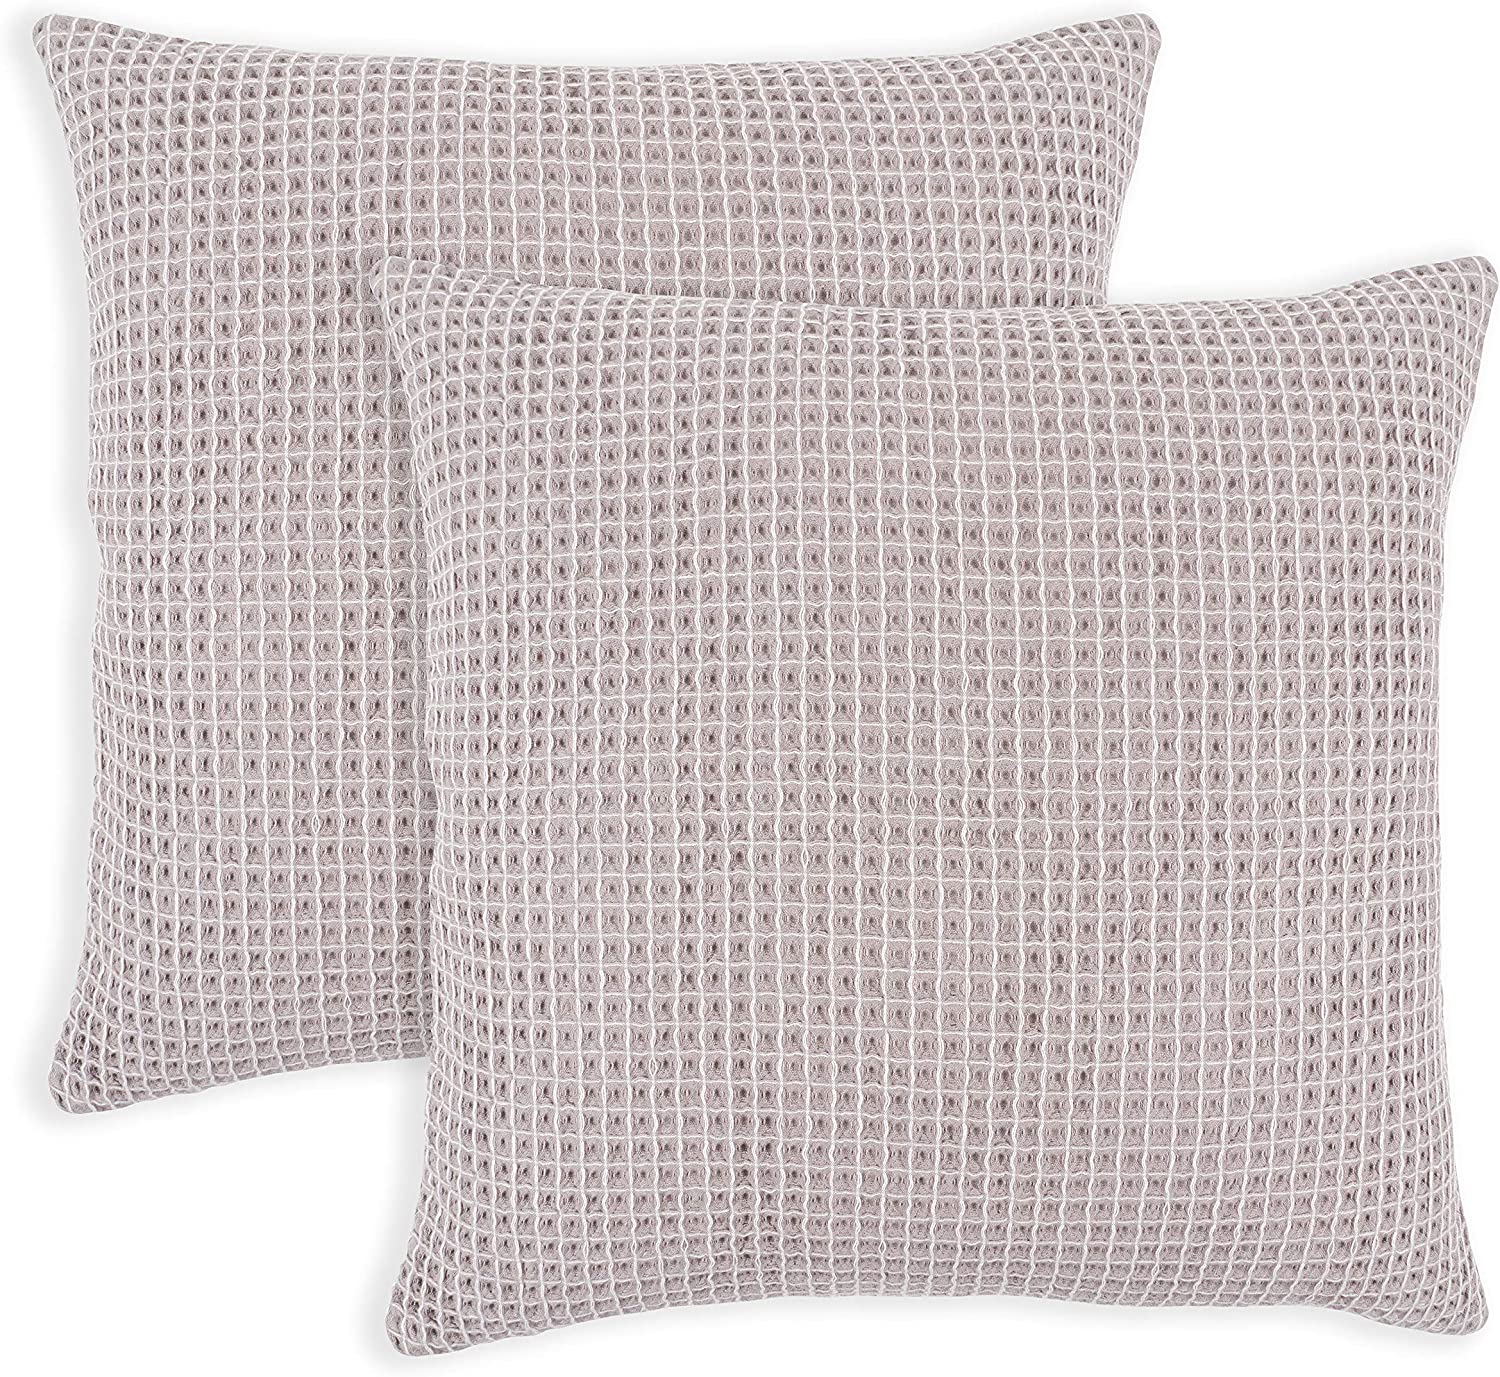 KAF Home Canopy Lane Tonal Waffle Pillow 20 x 20 Inch Covers   100-Percent Cotton   Set of 2 Pillow Covers (Gray)